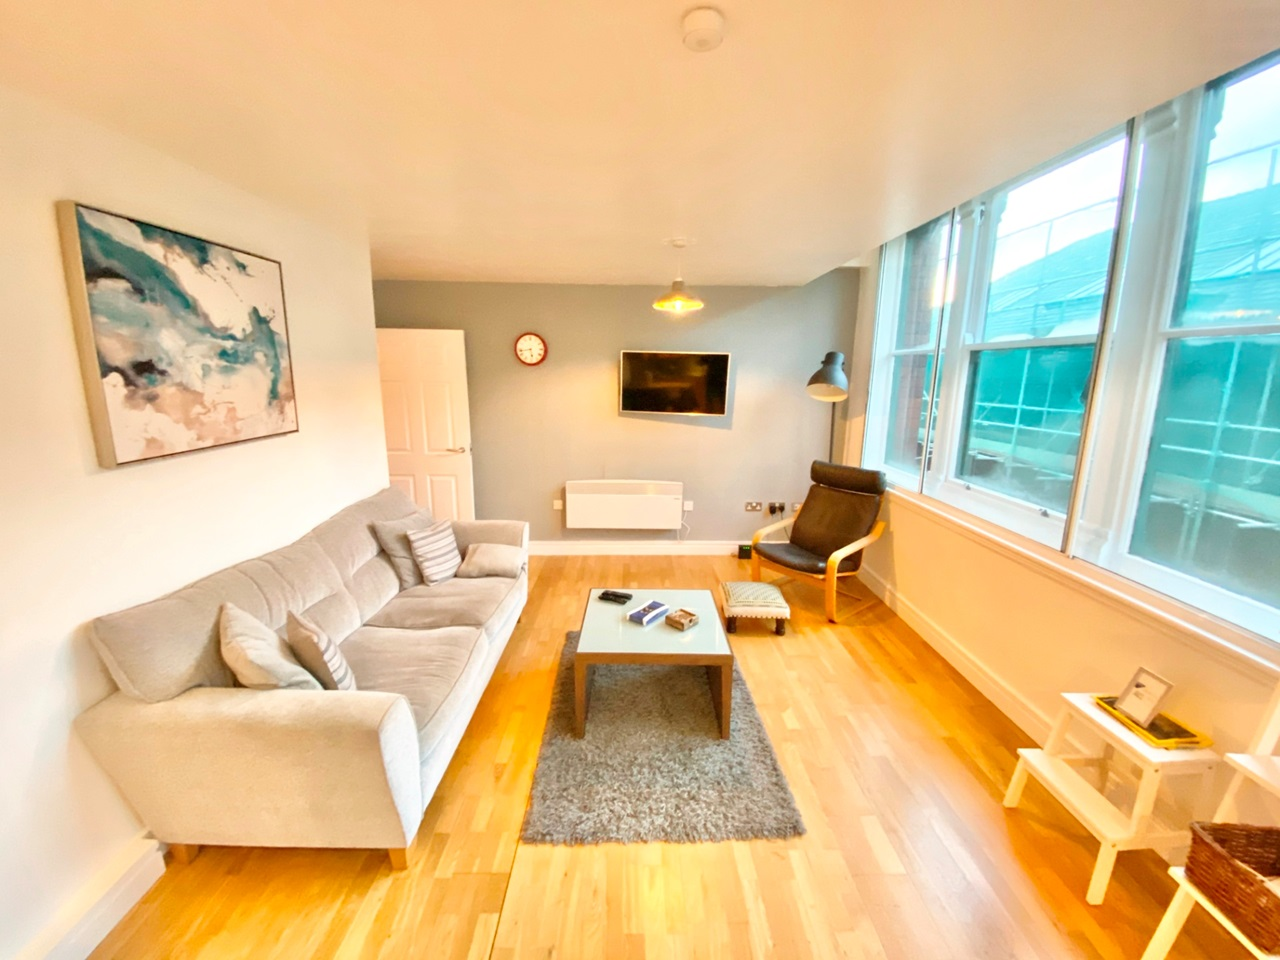 Manchester - 2 Bed Flat, Dale Street, M1 - To Rent Now for ...